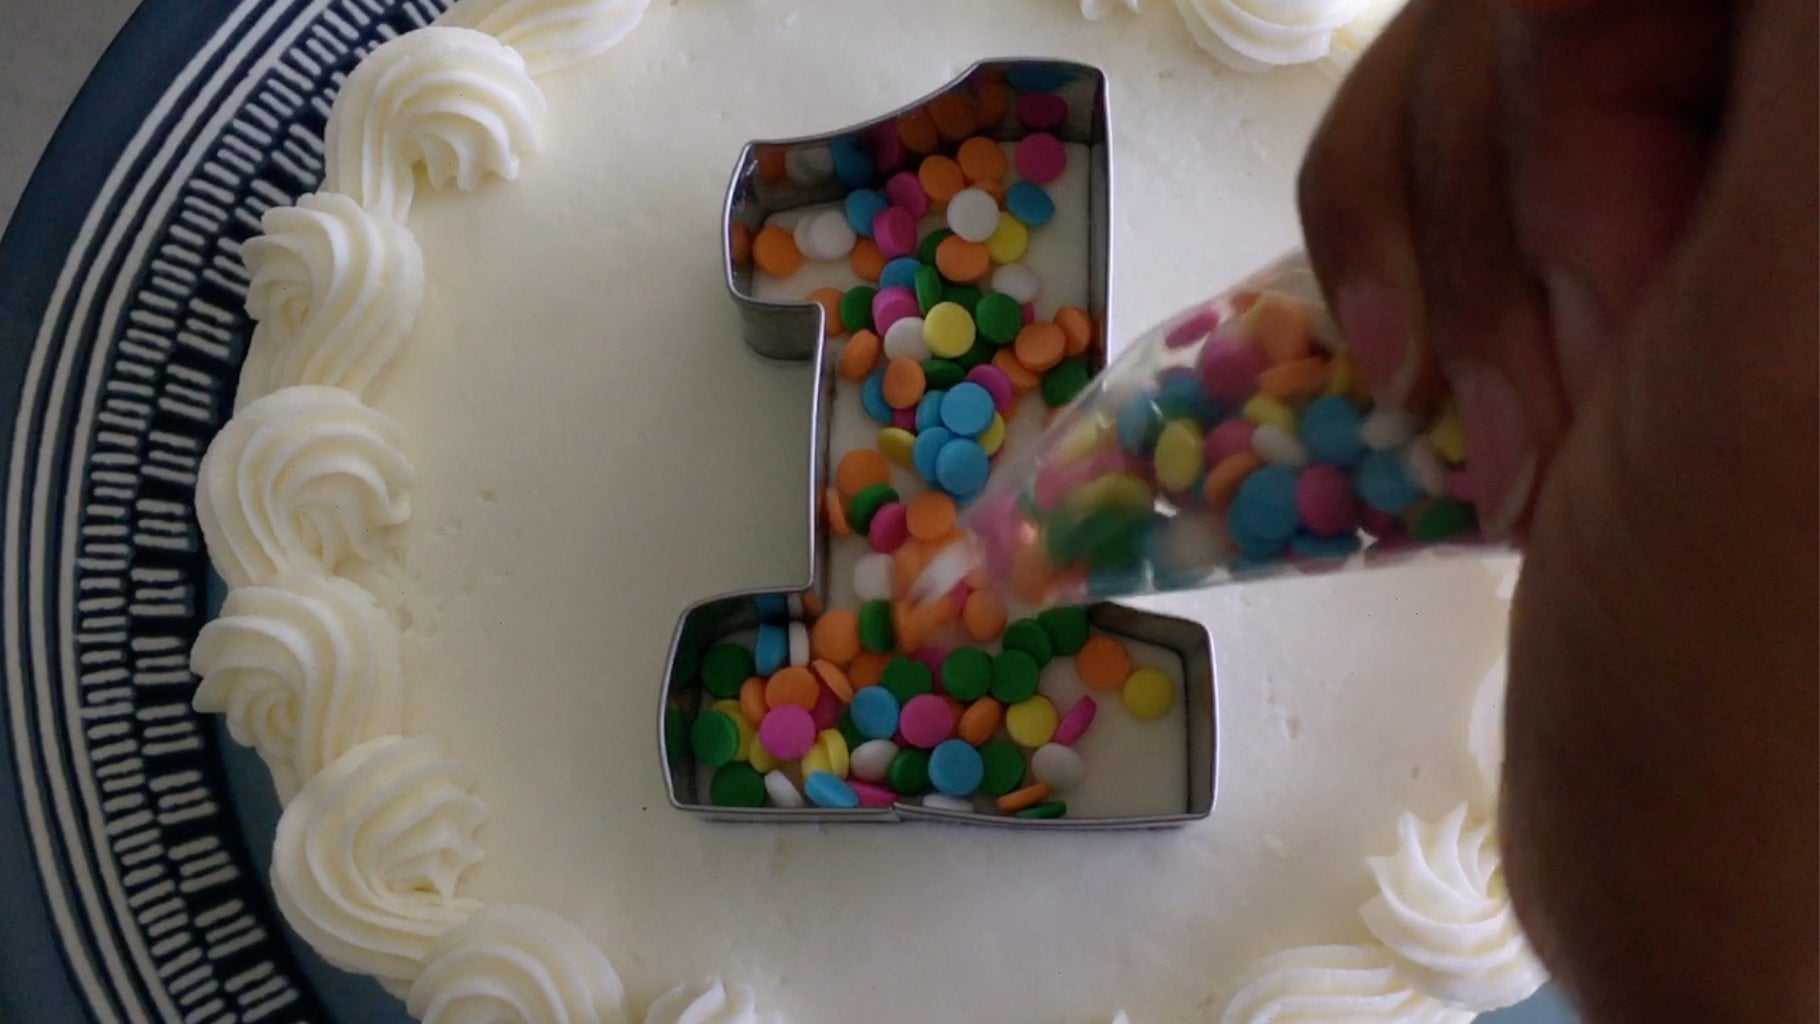 Step 14: Pour Sprinkles Into the Cutter